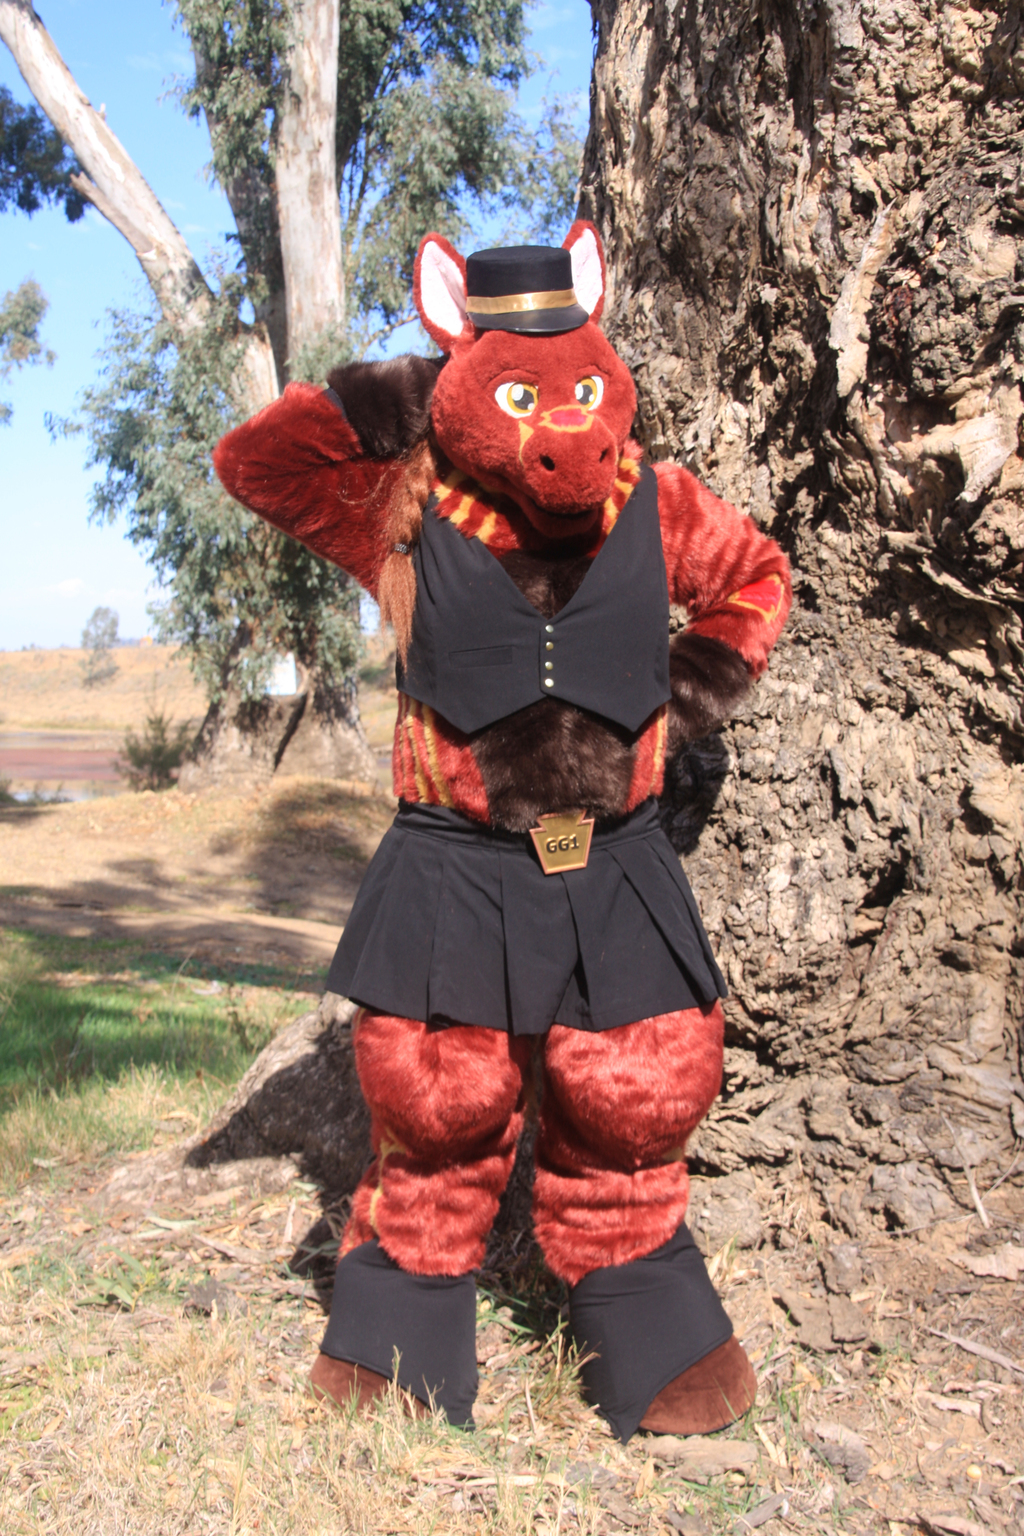 """Most recent image: Gina Gertrude One, or """"GG1"""".  Here posing by a river in Dubbo, New South Wales, Australia"""